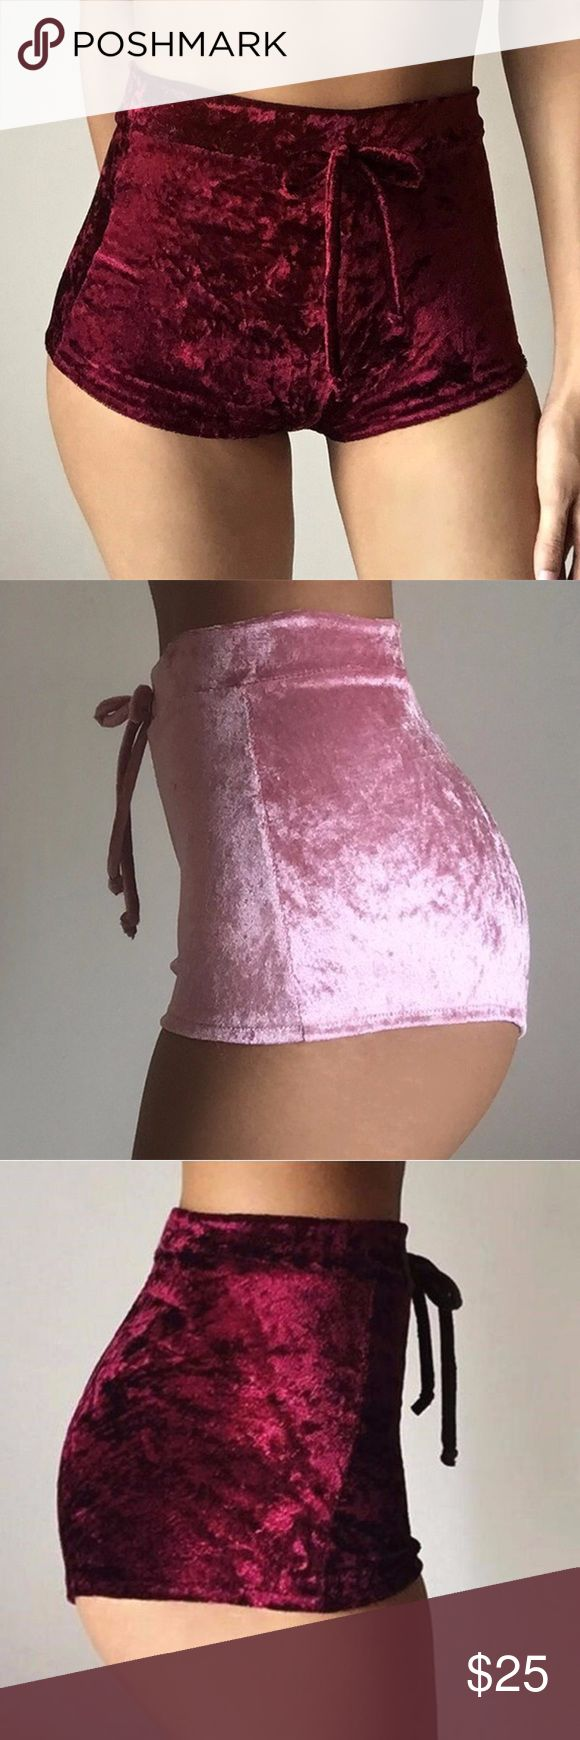 Velvet lounge high waisted shorts Brand new velvet high waisted shorts                                          Medium sizing: 6-8. Waist-26-29in, Hips-35-37,8in, Length-11.6in.                                  ✨Comment which color you want when purchasing✨ (Tagged in VS for exposure) PINK Victoria's Secret Shorts